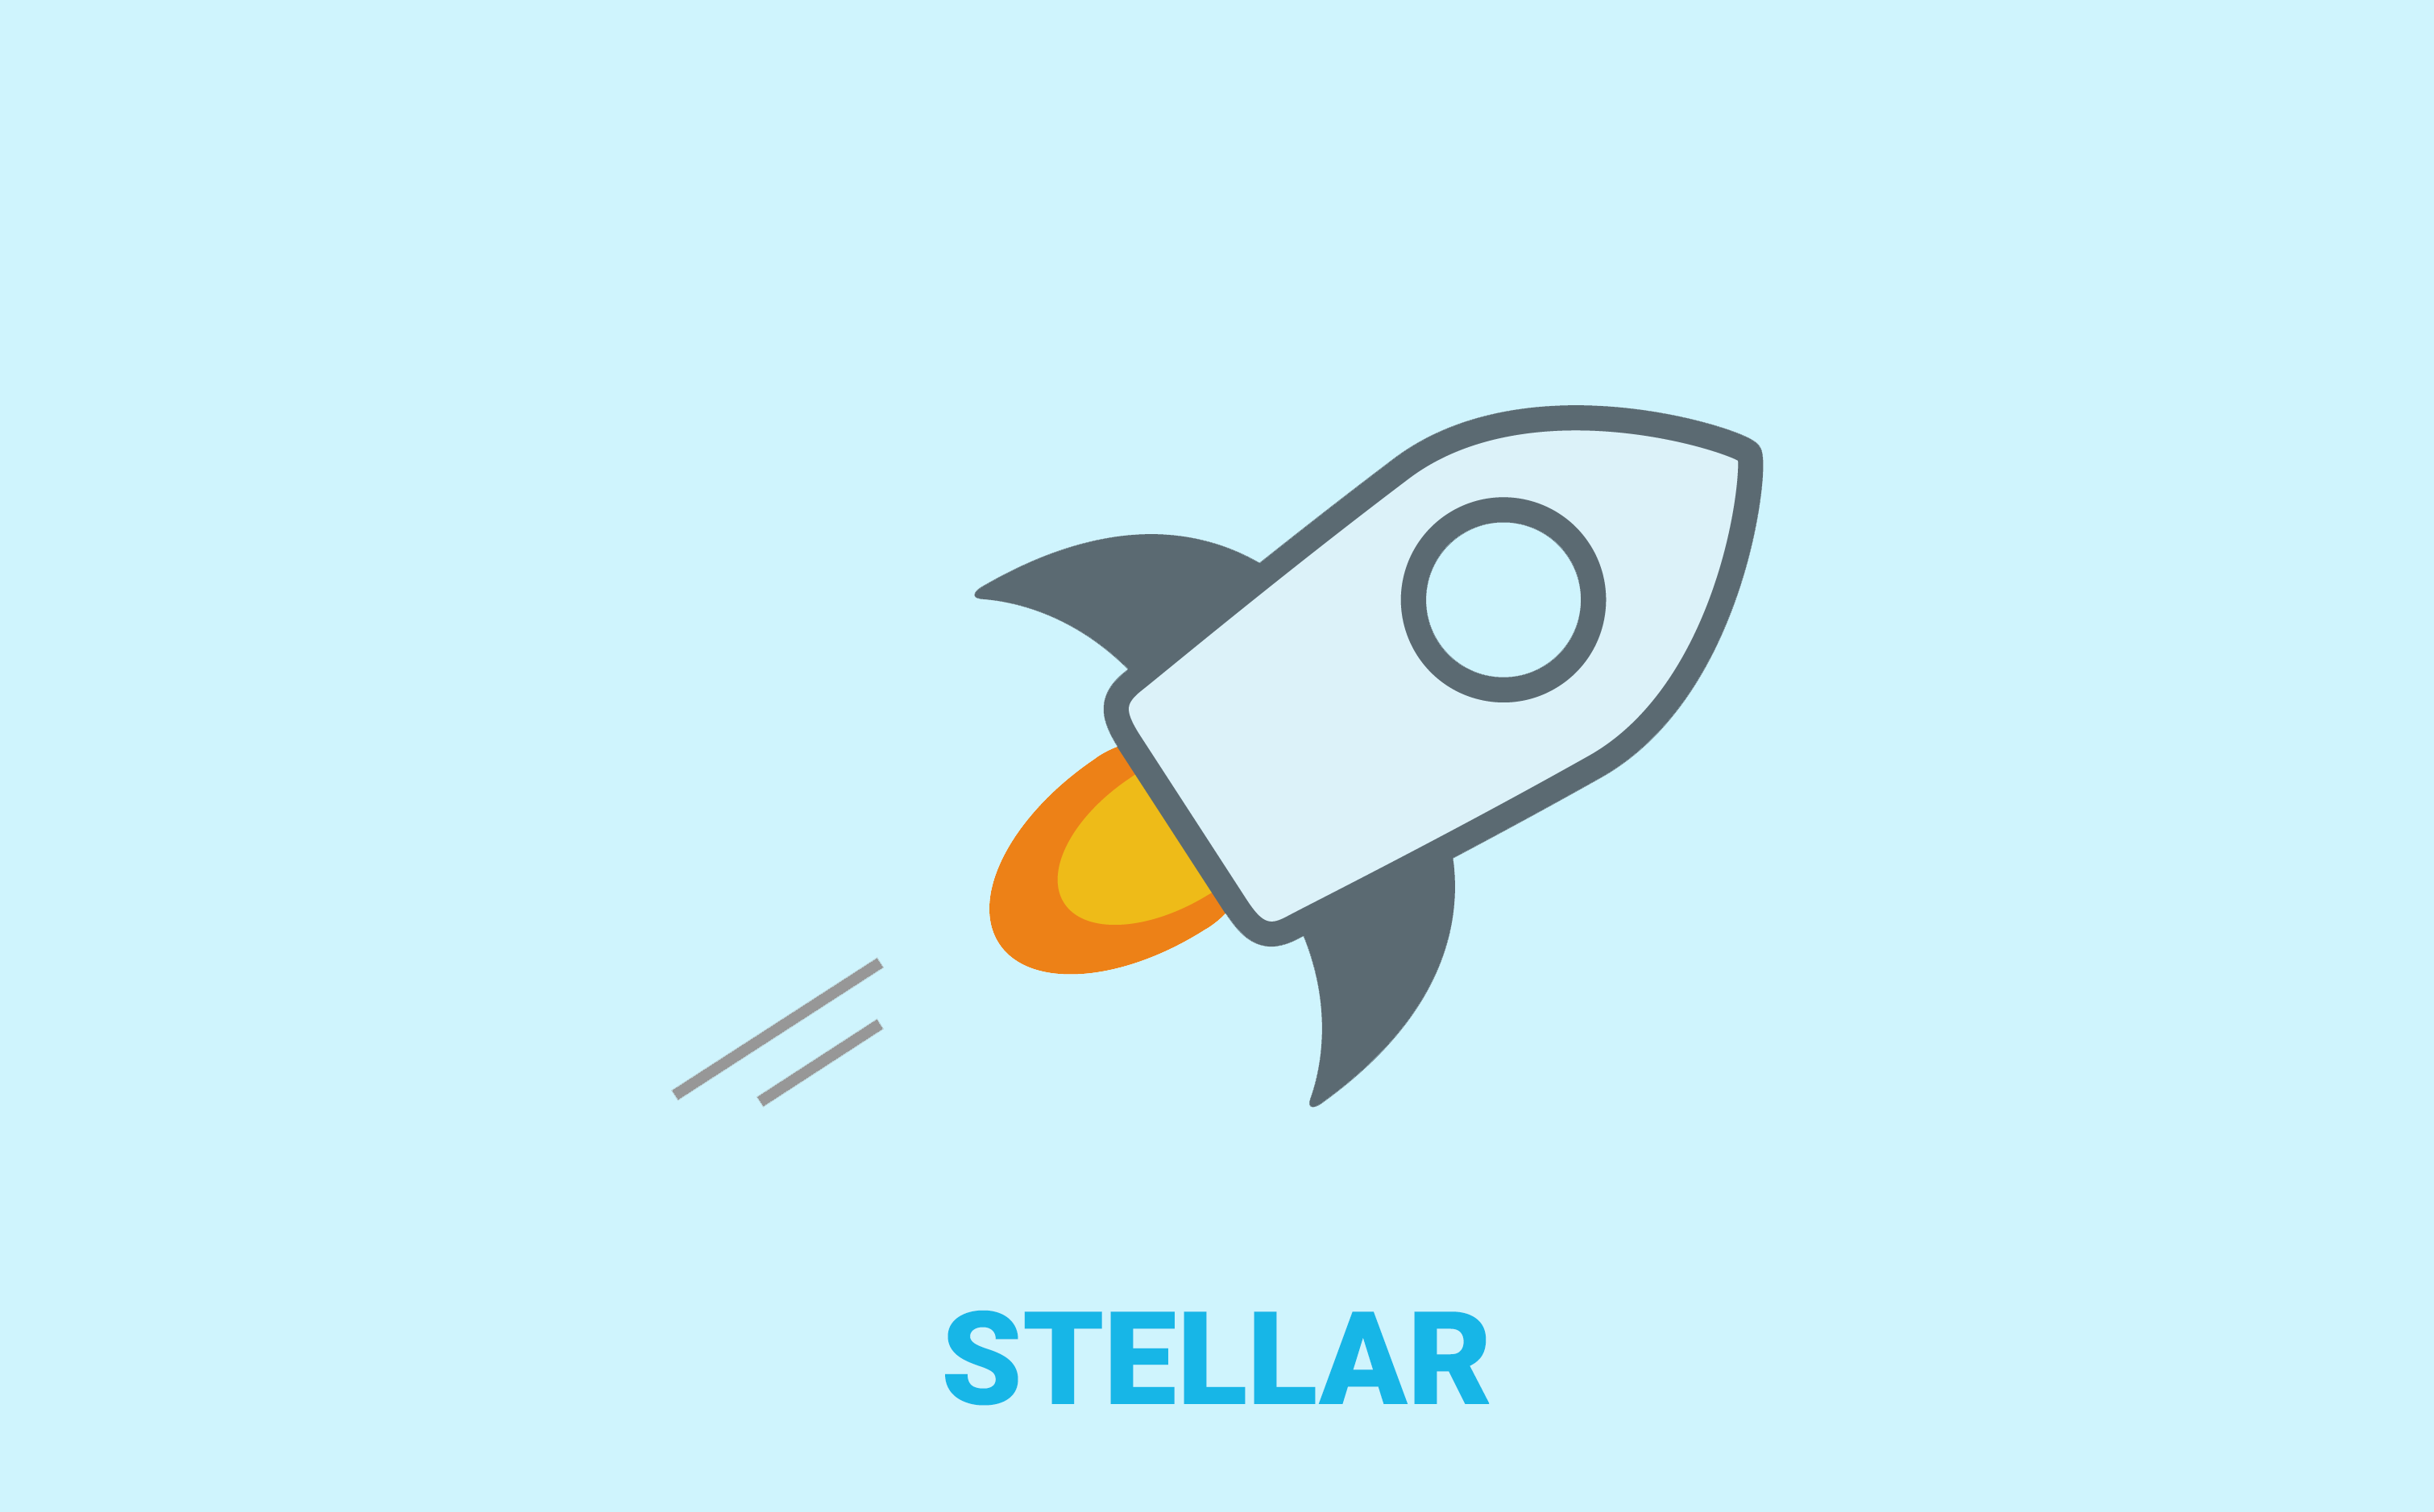 Stellar Overtakes EOS to Become the Fifth Largest Cryptocurrency by Market Cap